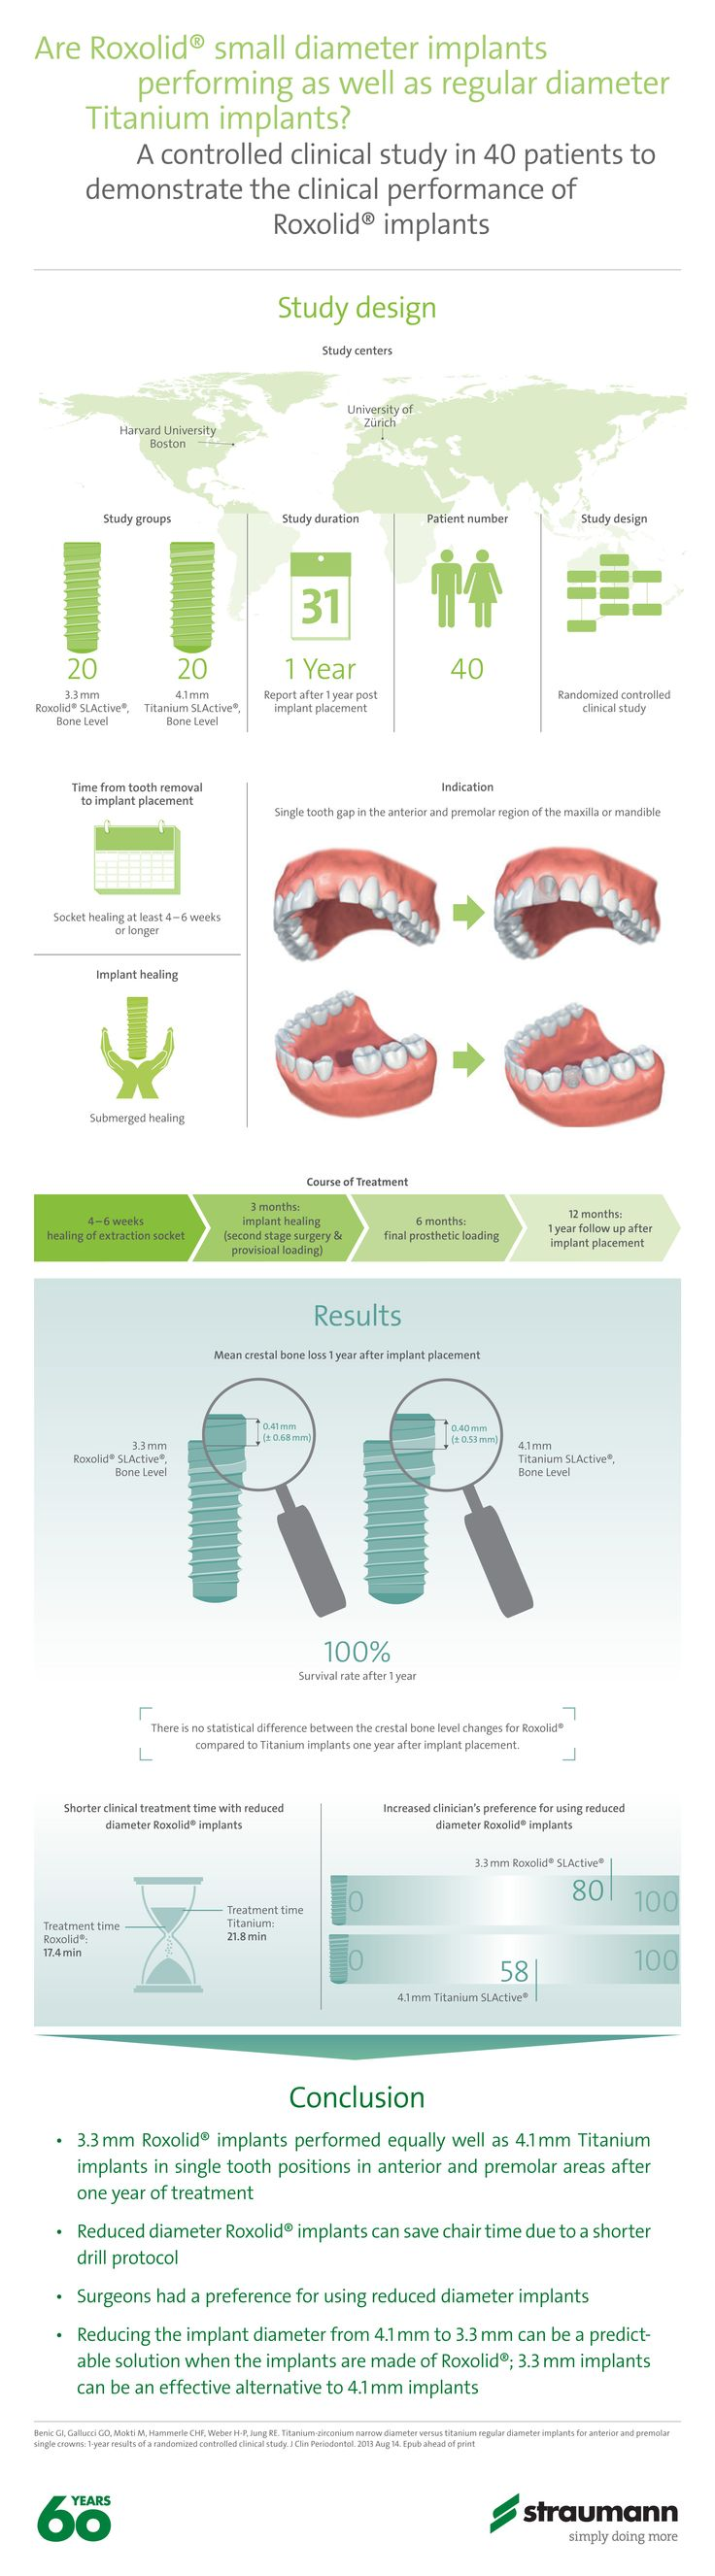 Are Roxolid® small diameter implants  performing as well as regular diameter Titanium implants? A controlled clinical study in 40 patients to demonstrate the clinical performance of Roxolid® implants.